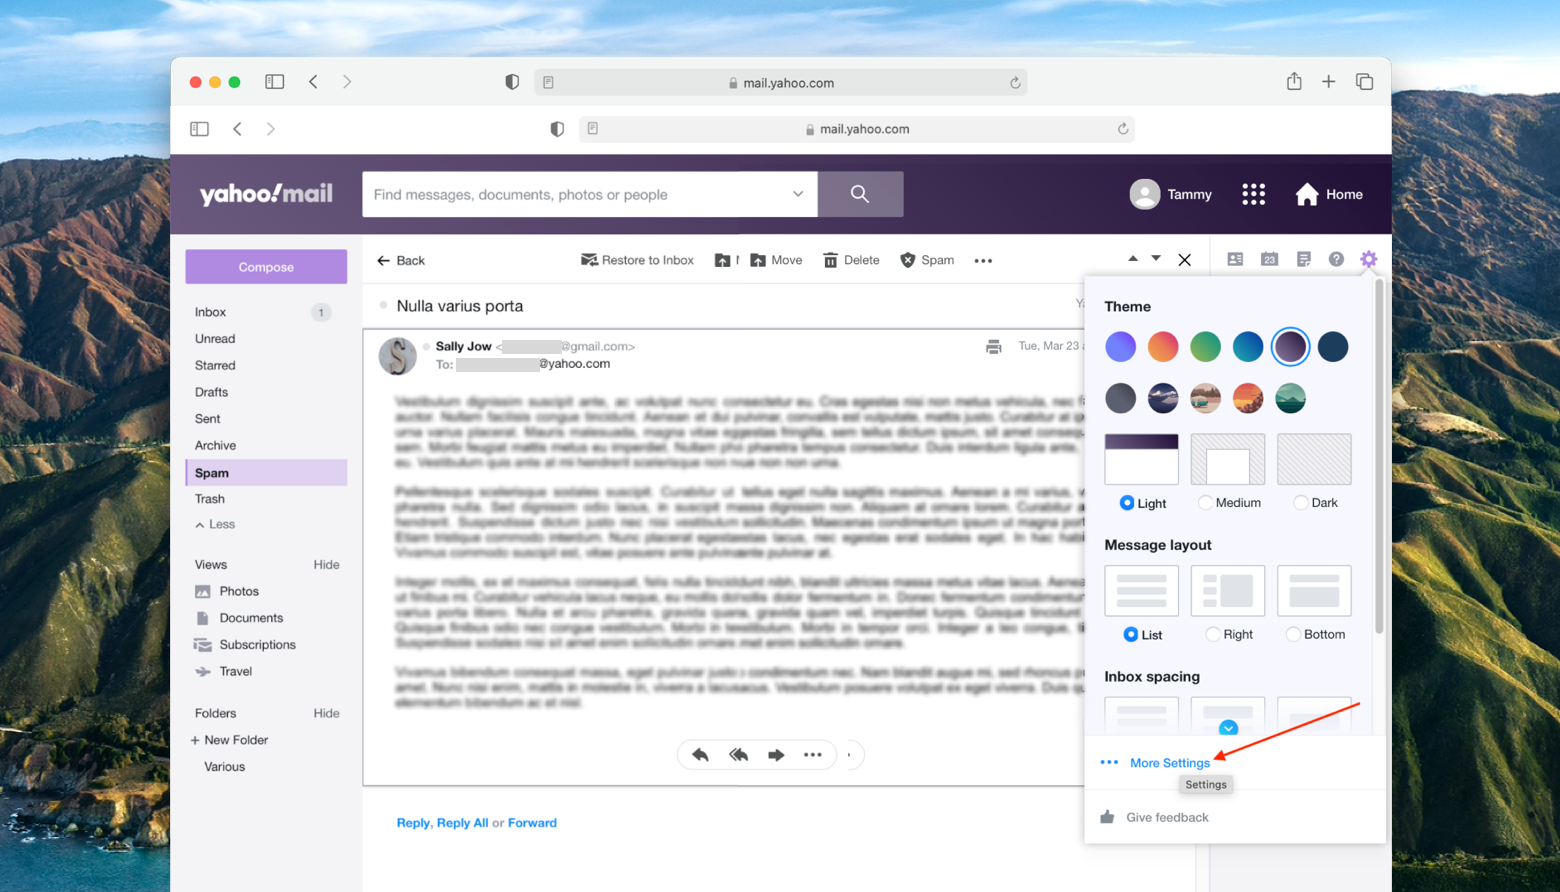 go to Yahoo mail settings